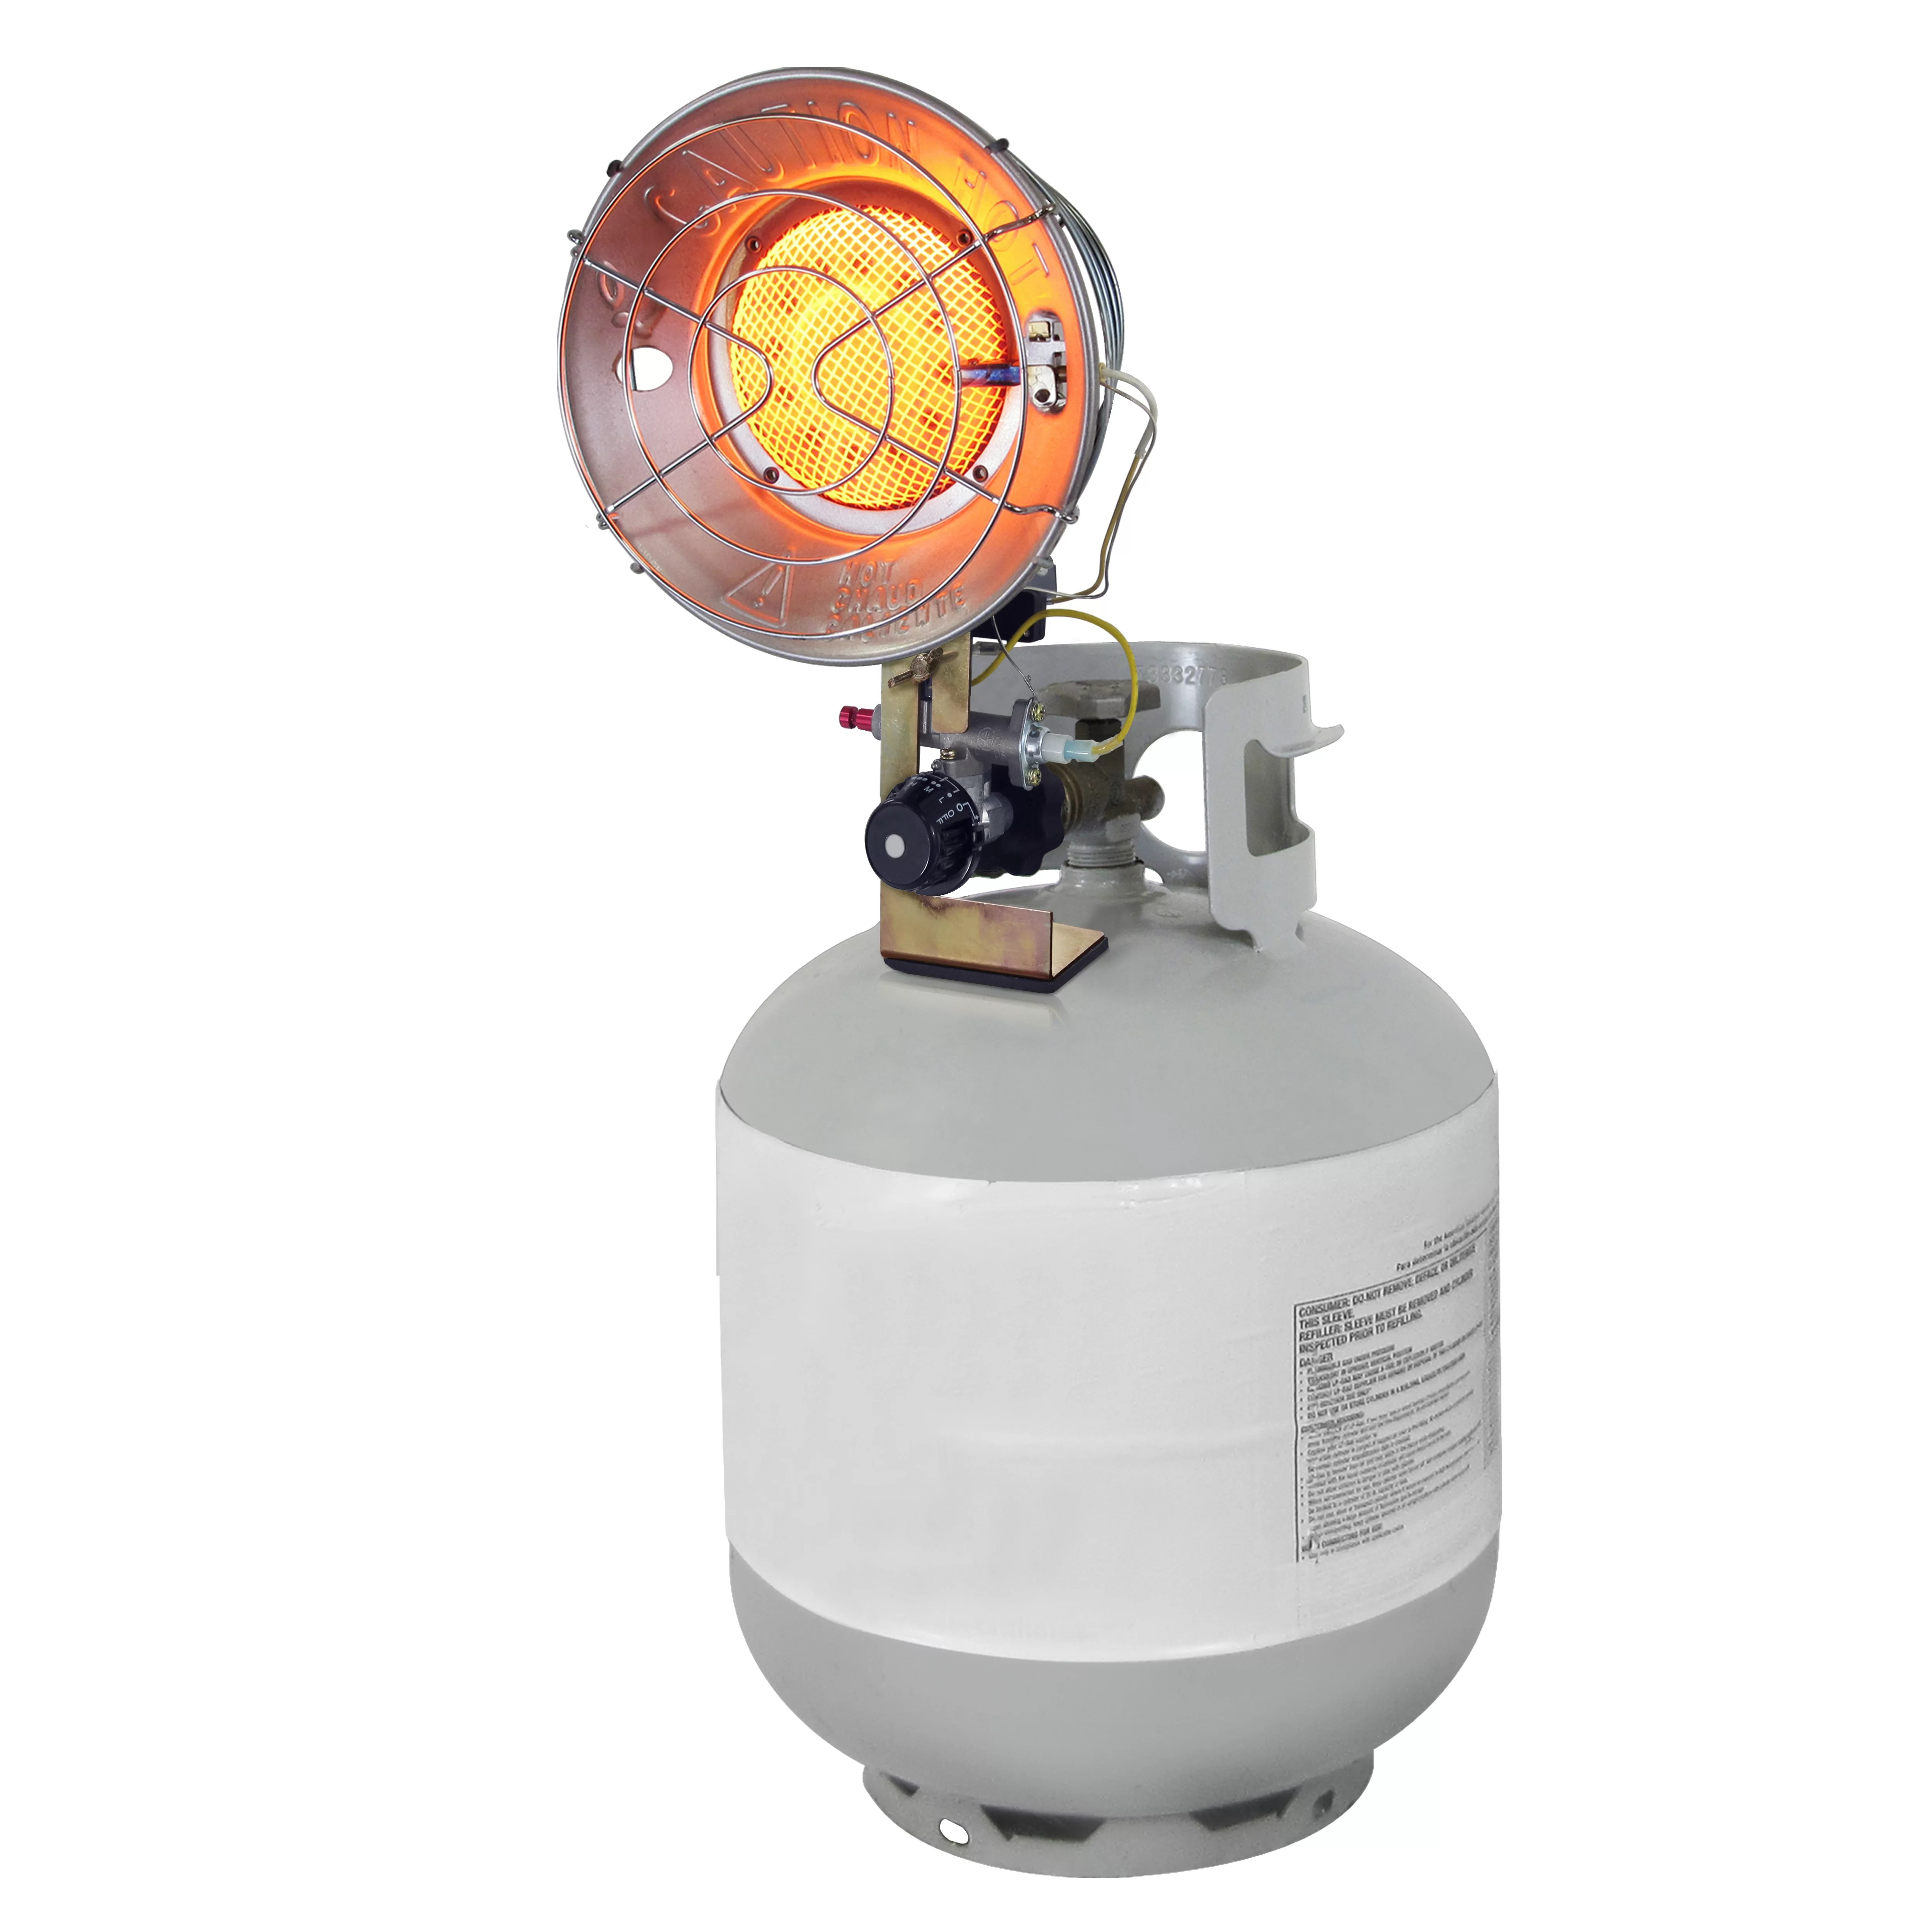 Radiant Heater 15 000 Btu Portable Propane Radiant Tank Top Heater With Tip Over Safety Switch